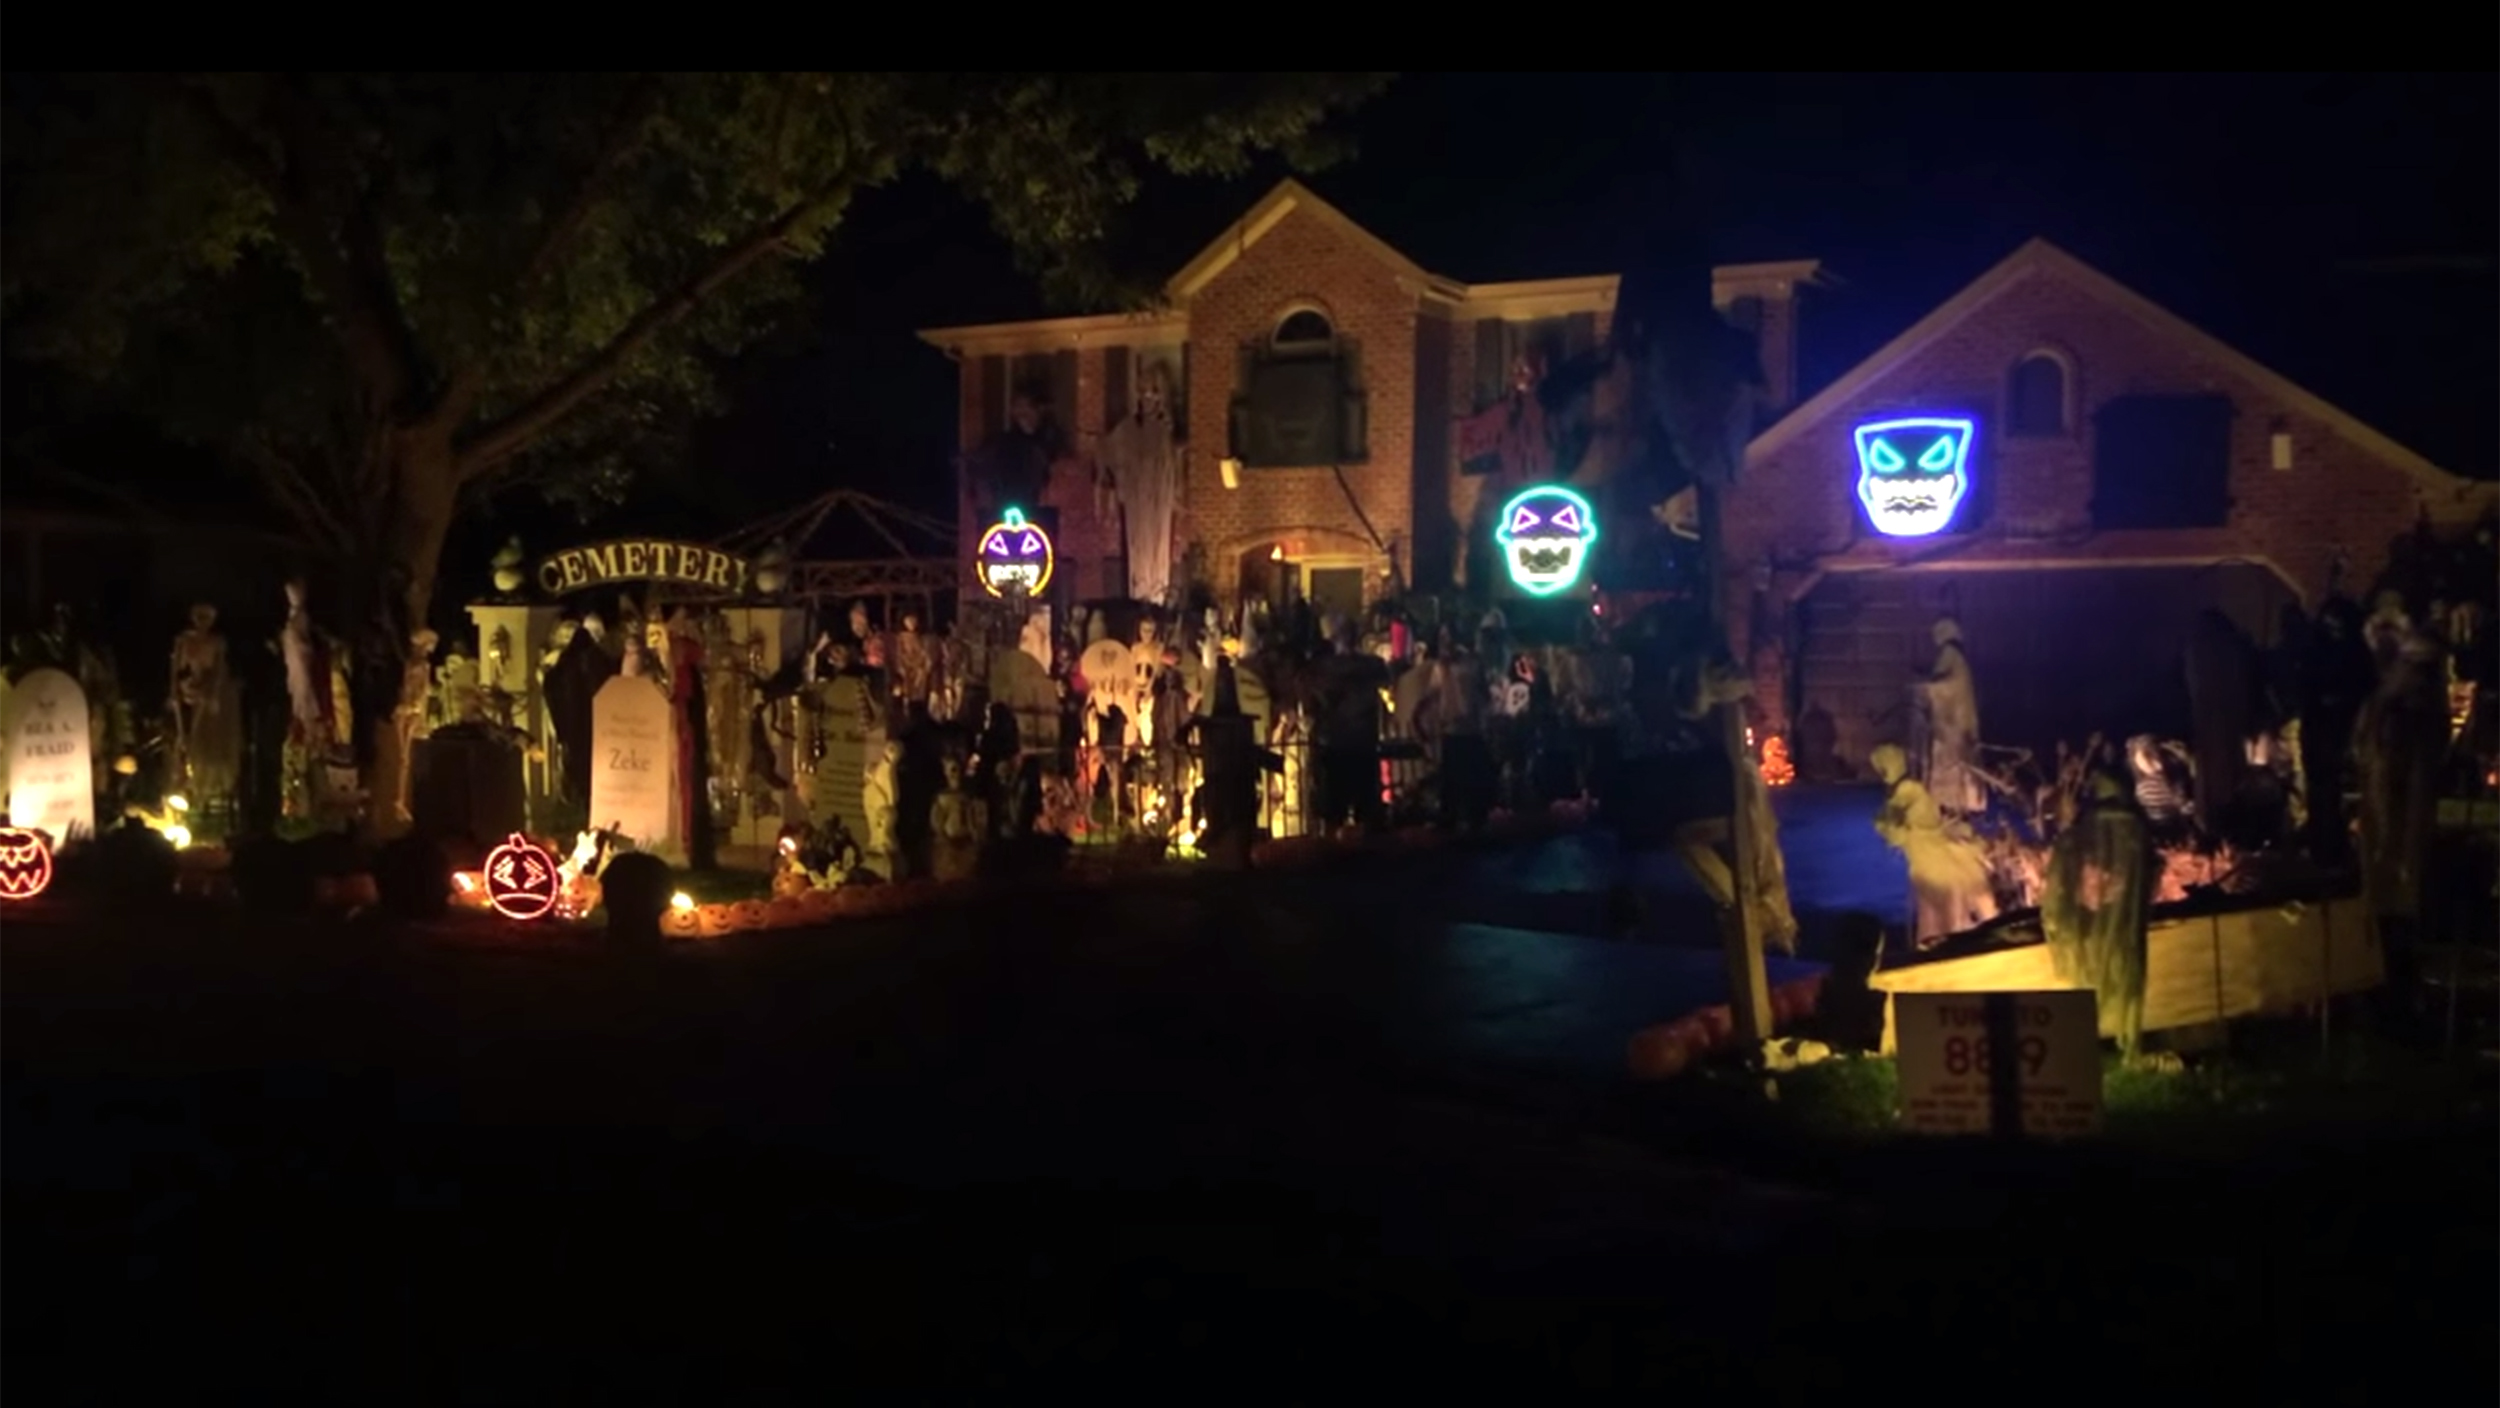 & See Halloween done right with this homeu0027s musical light display